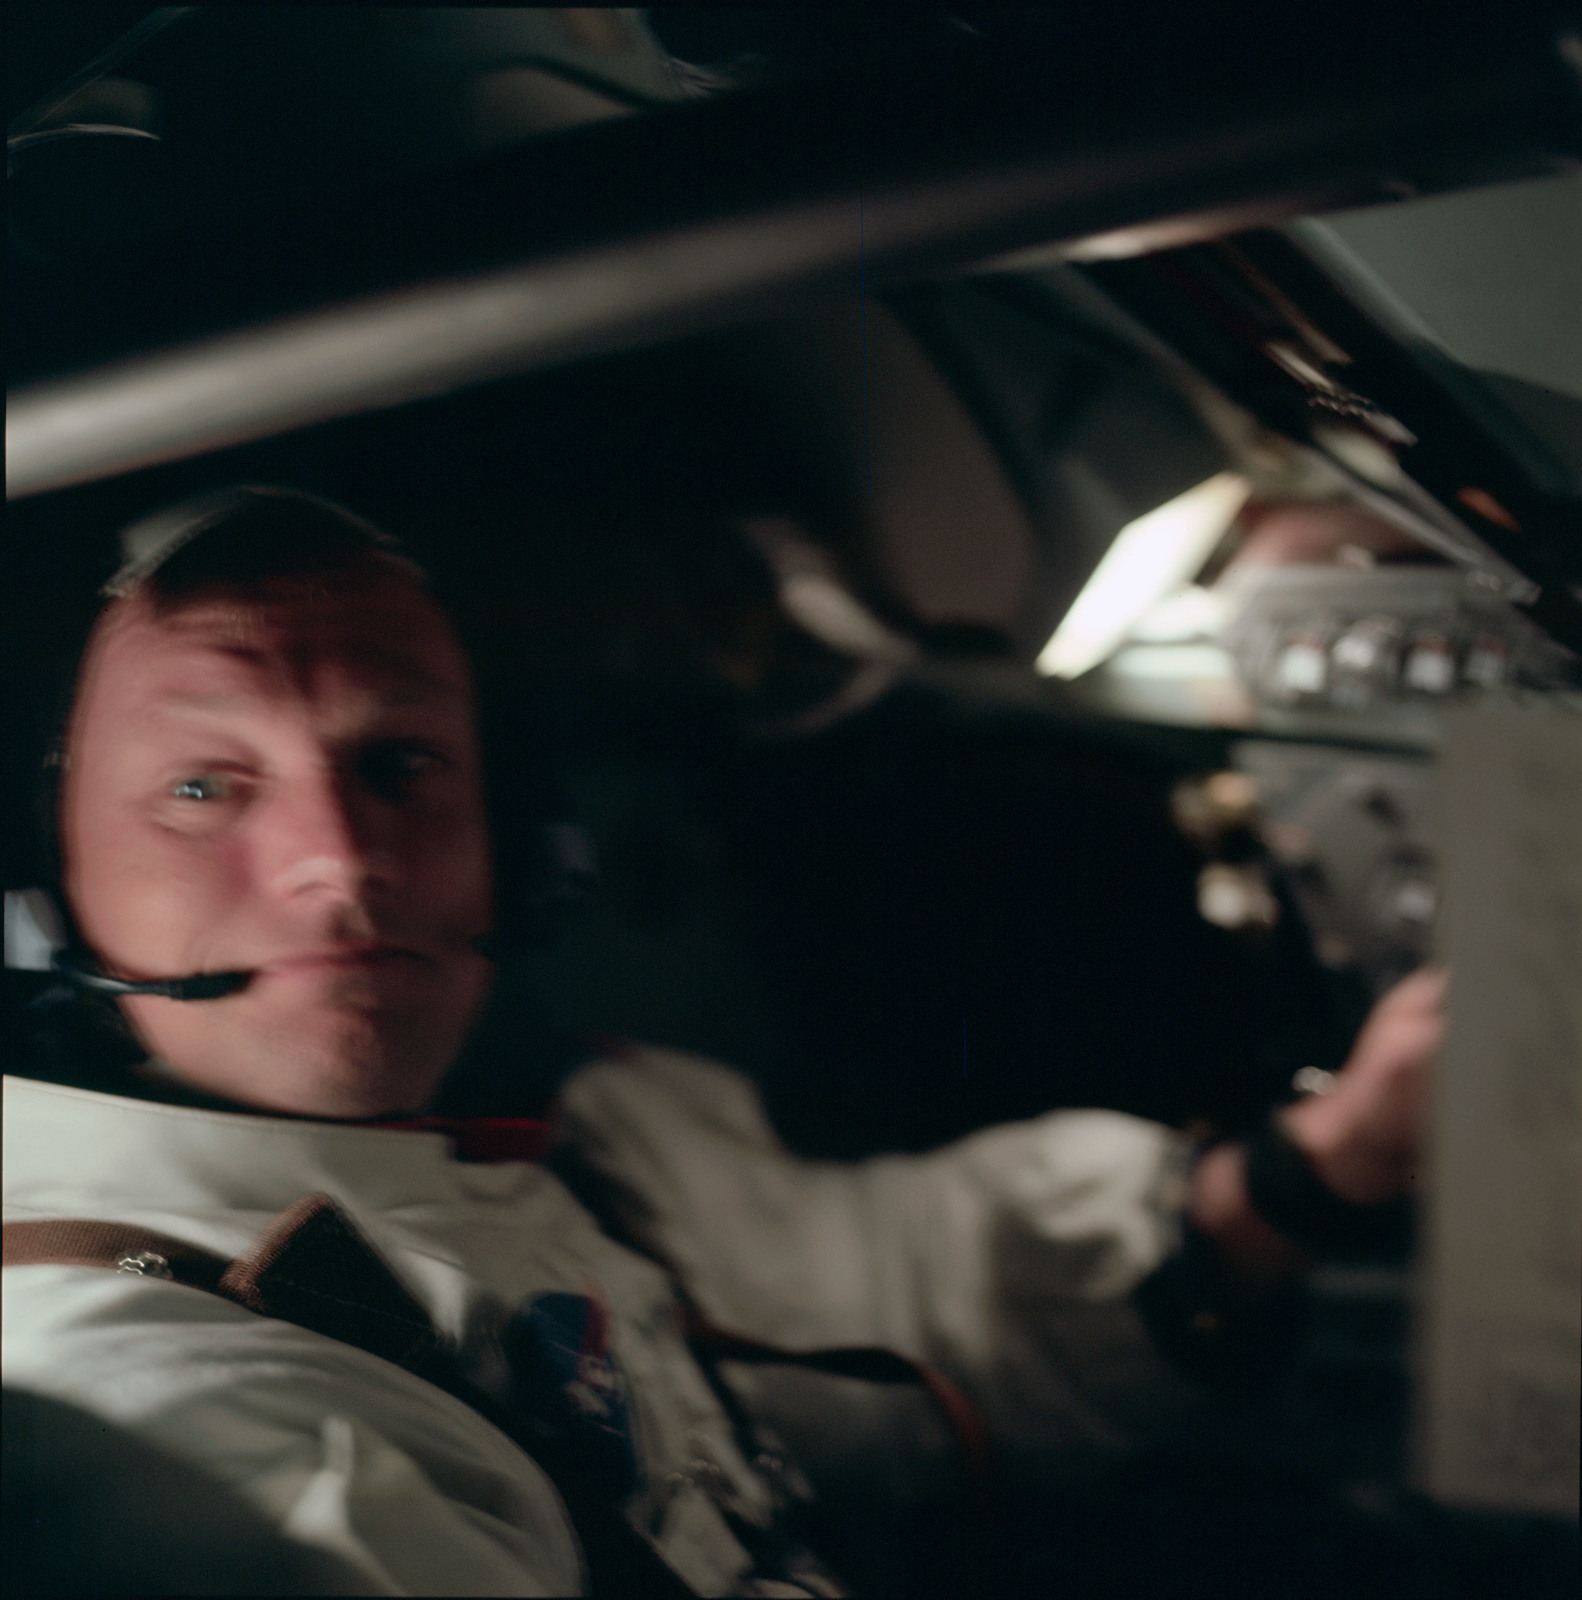 AS11-36-5291 - Apollo 11 - Apollo 11 Mission image - Spacecraft interior with astronaut Neil A. Armstrong looking at camera